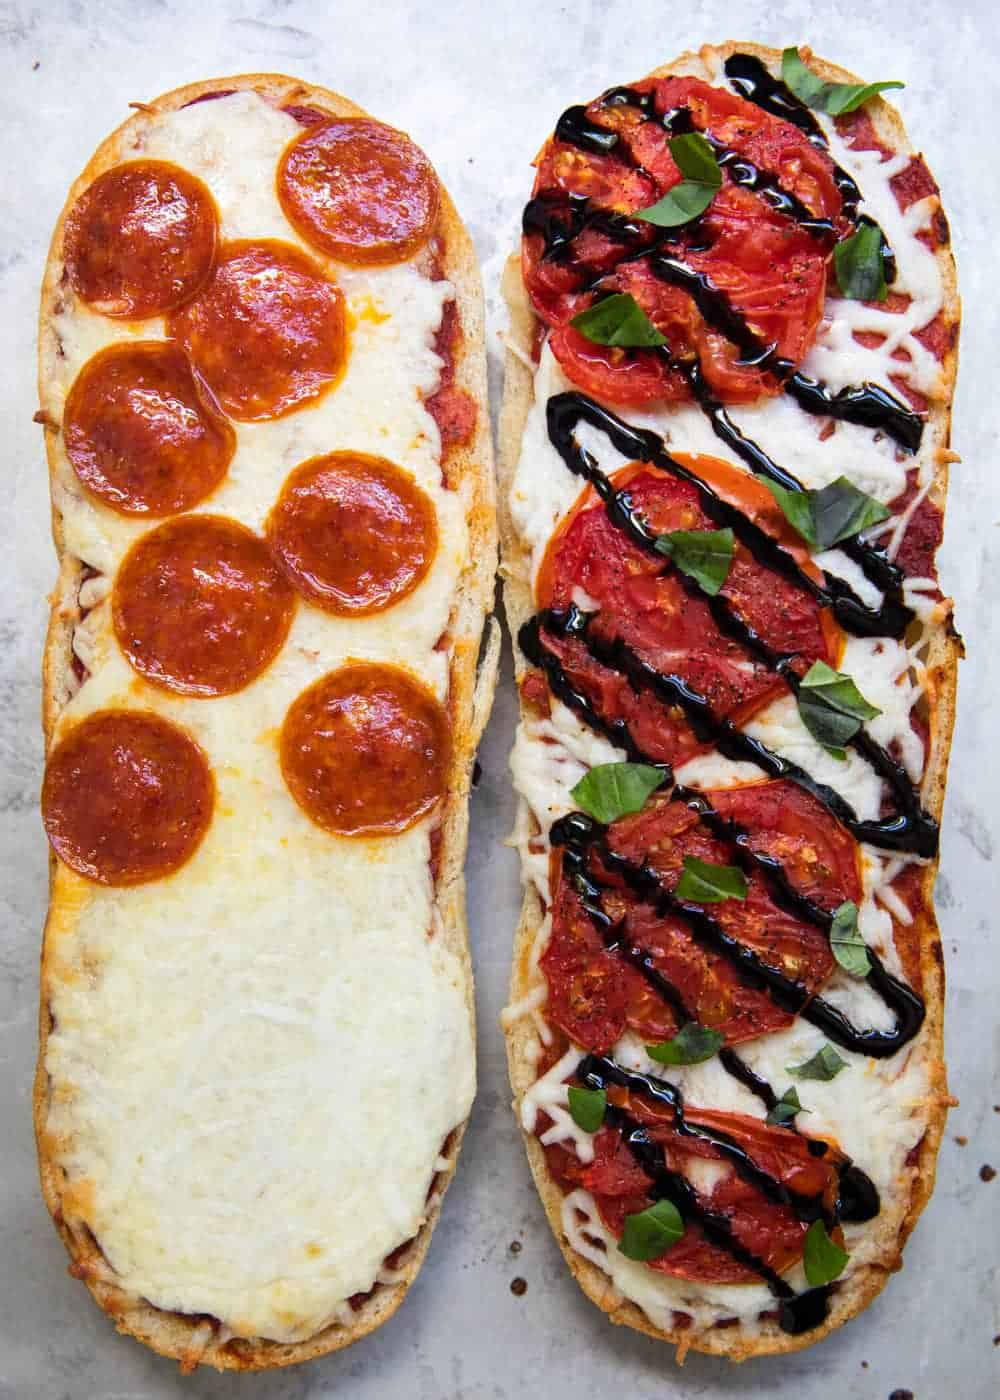 baked french bread pizza